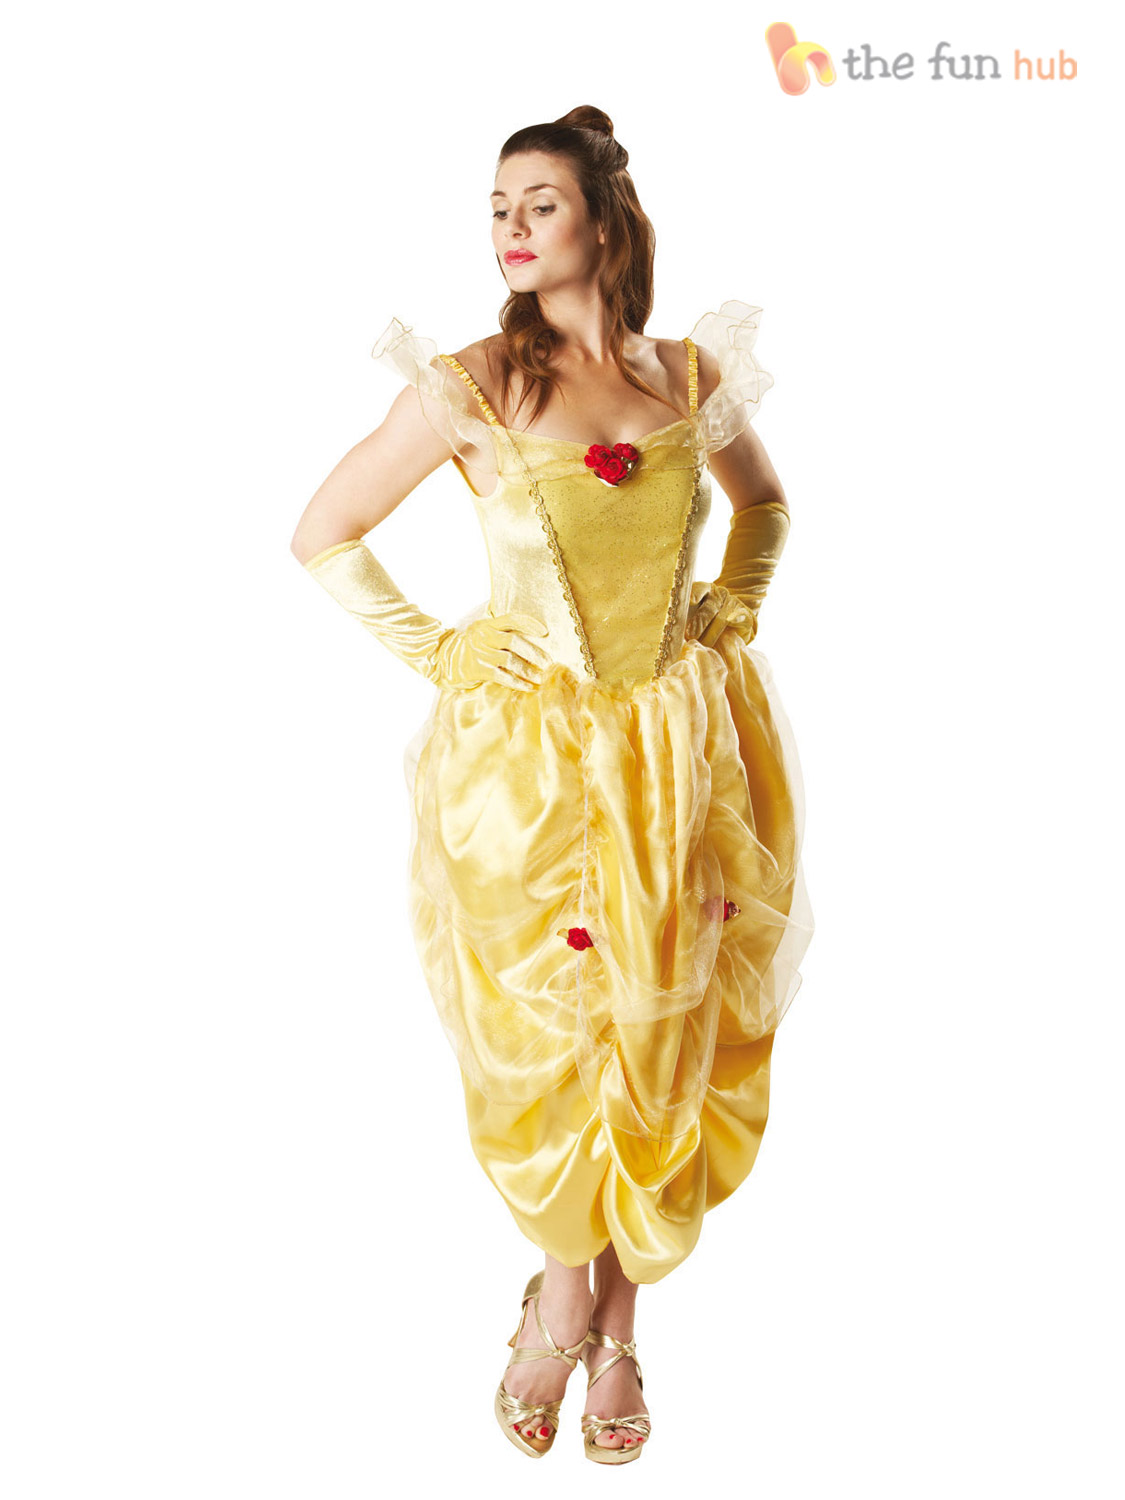 Disney princess gowns for adults - Official Ladies Deluxe Disney Princess Fairytale Costume Adult